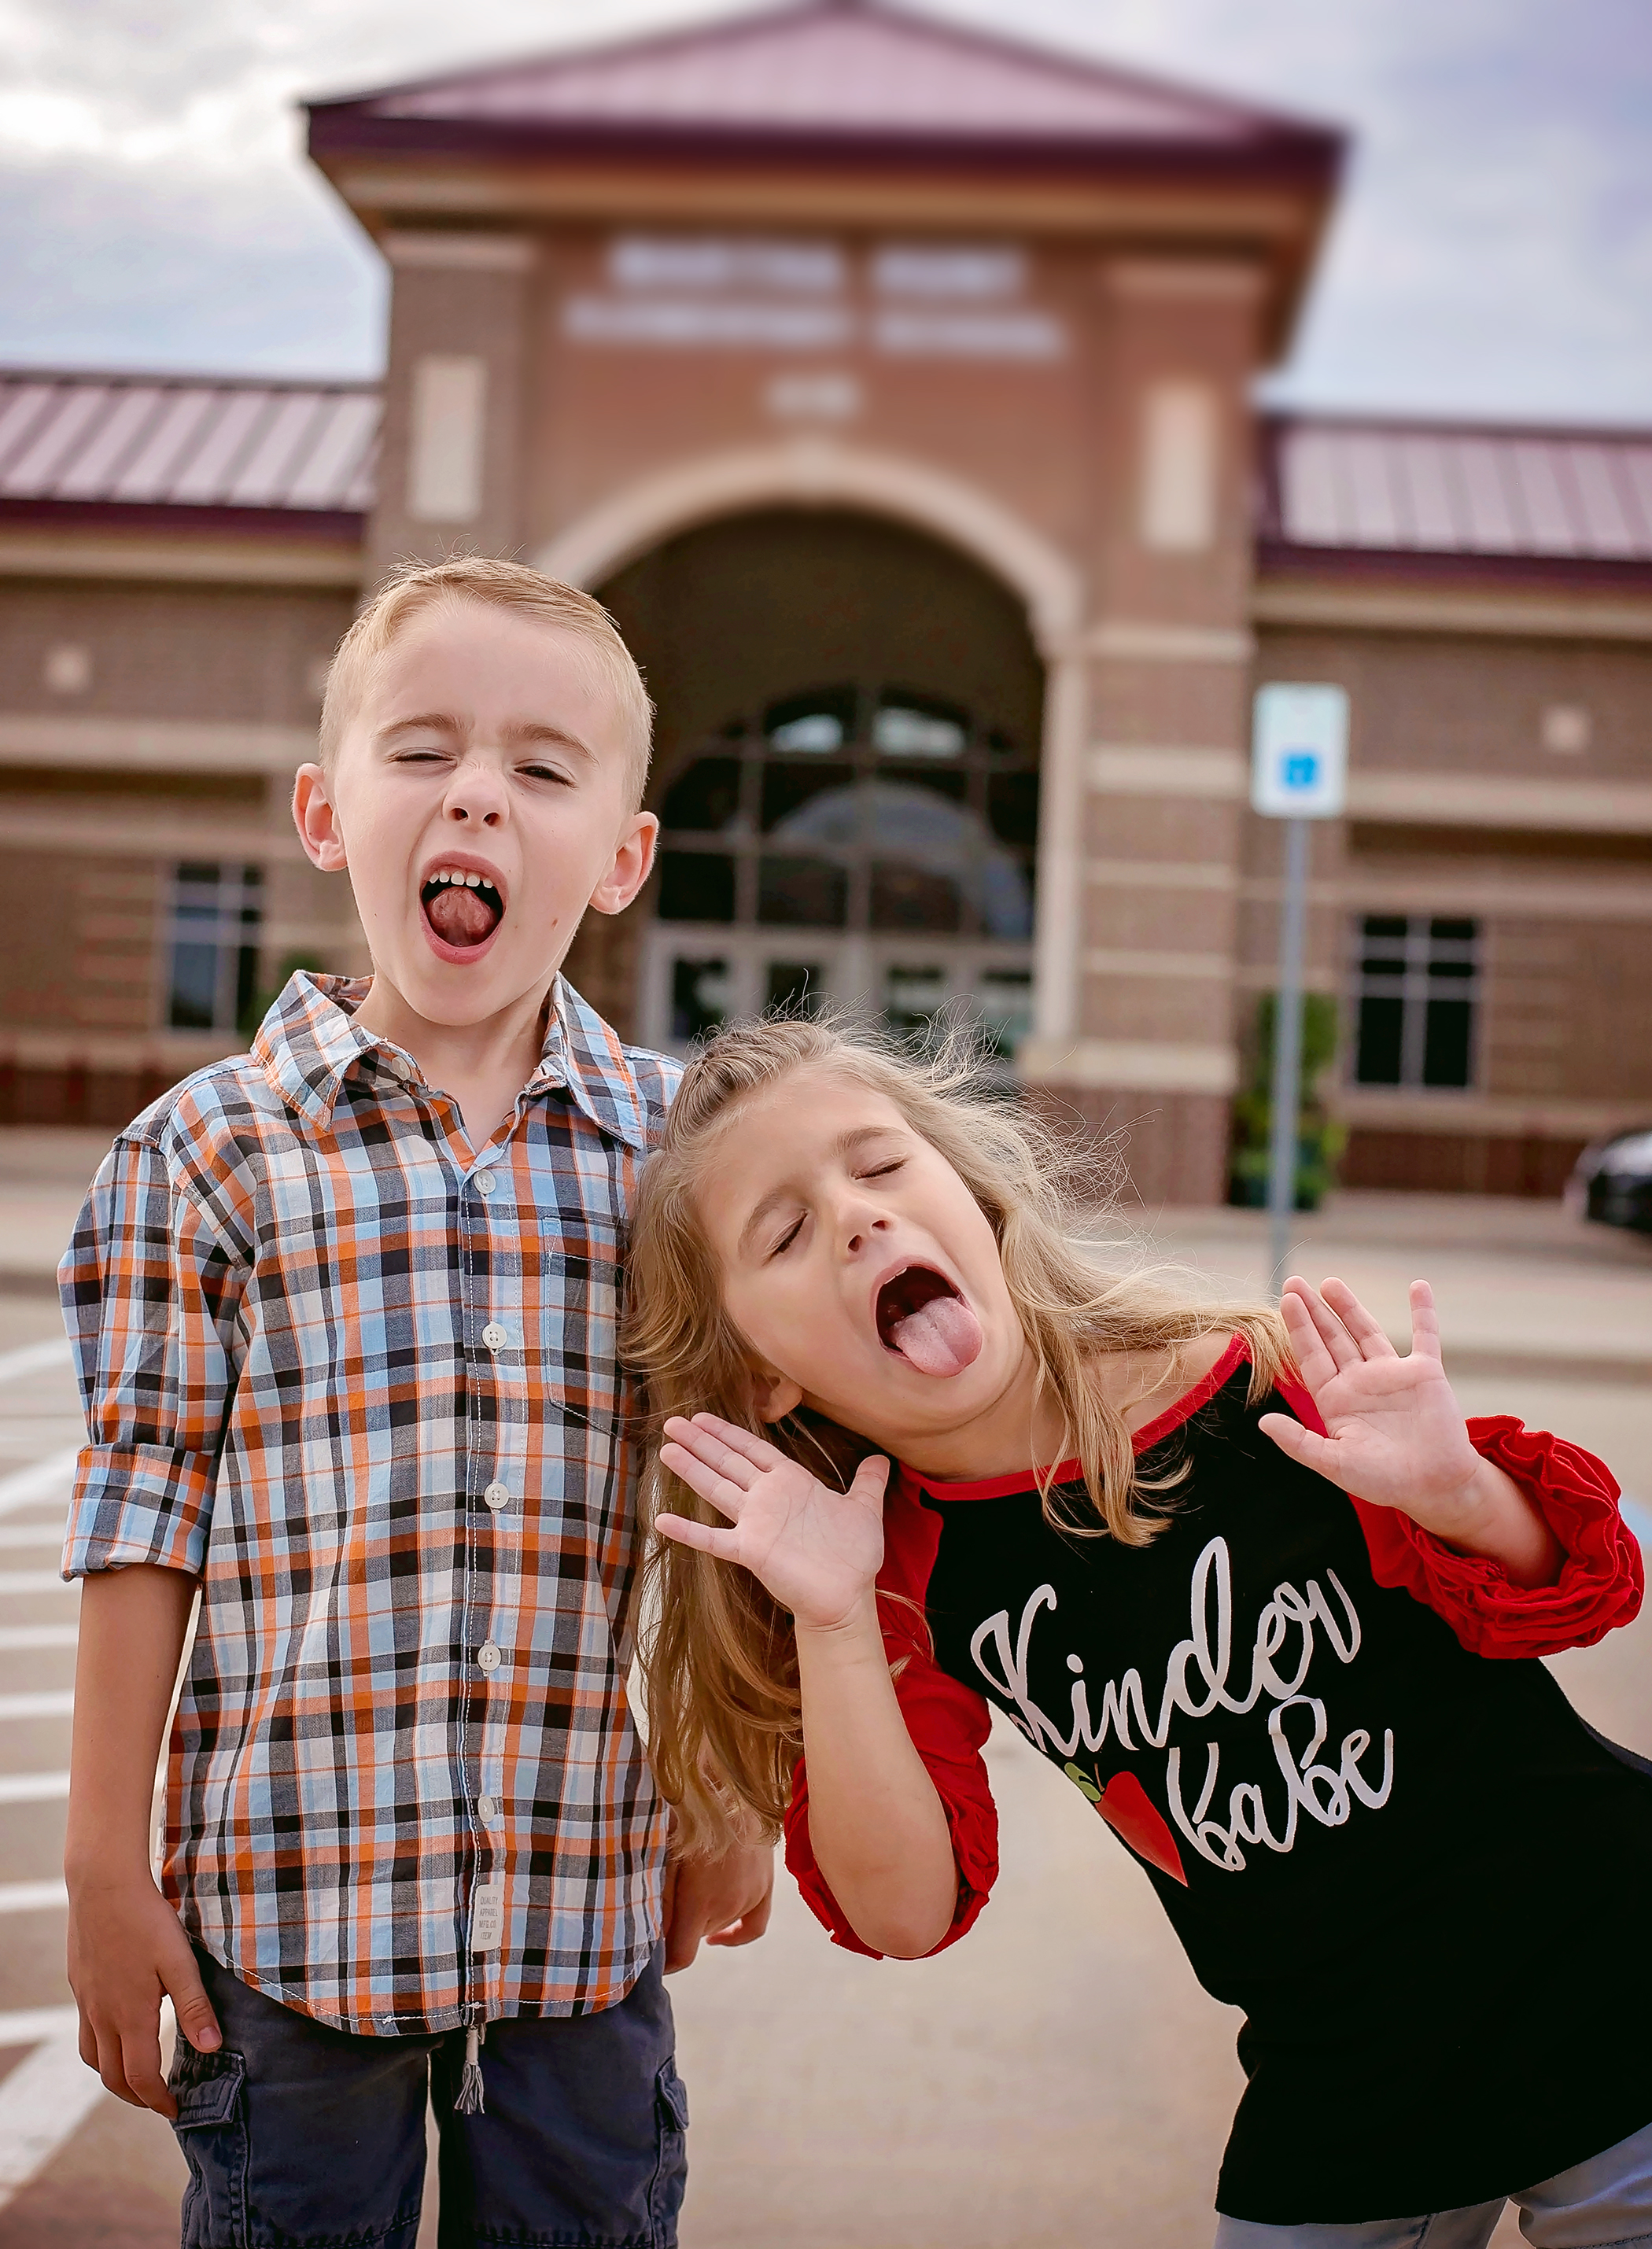 They are ready for school! Is school ready for them?!?!